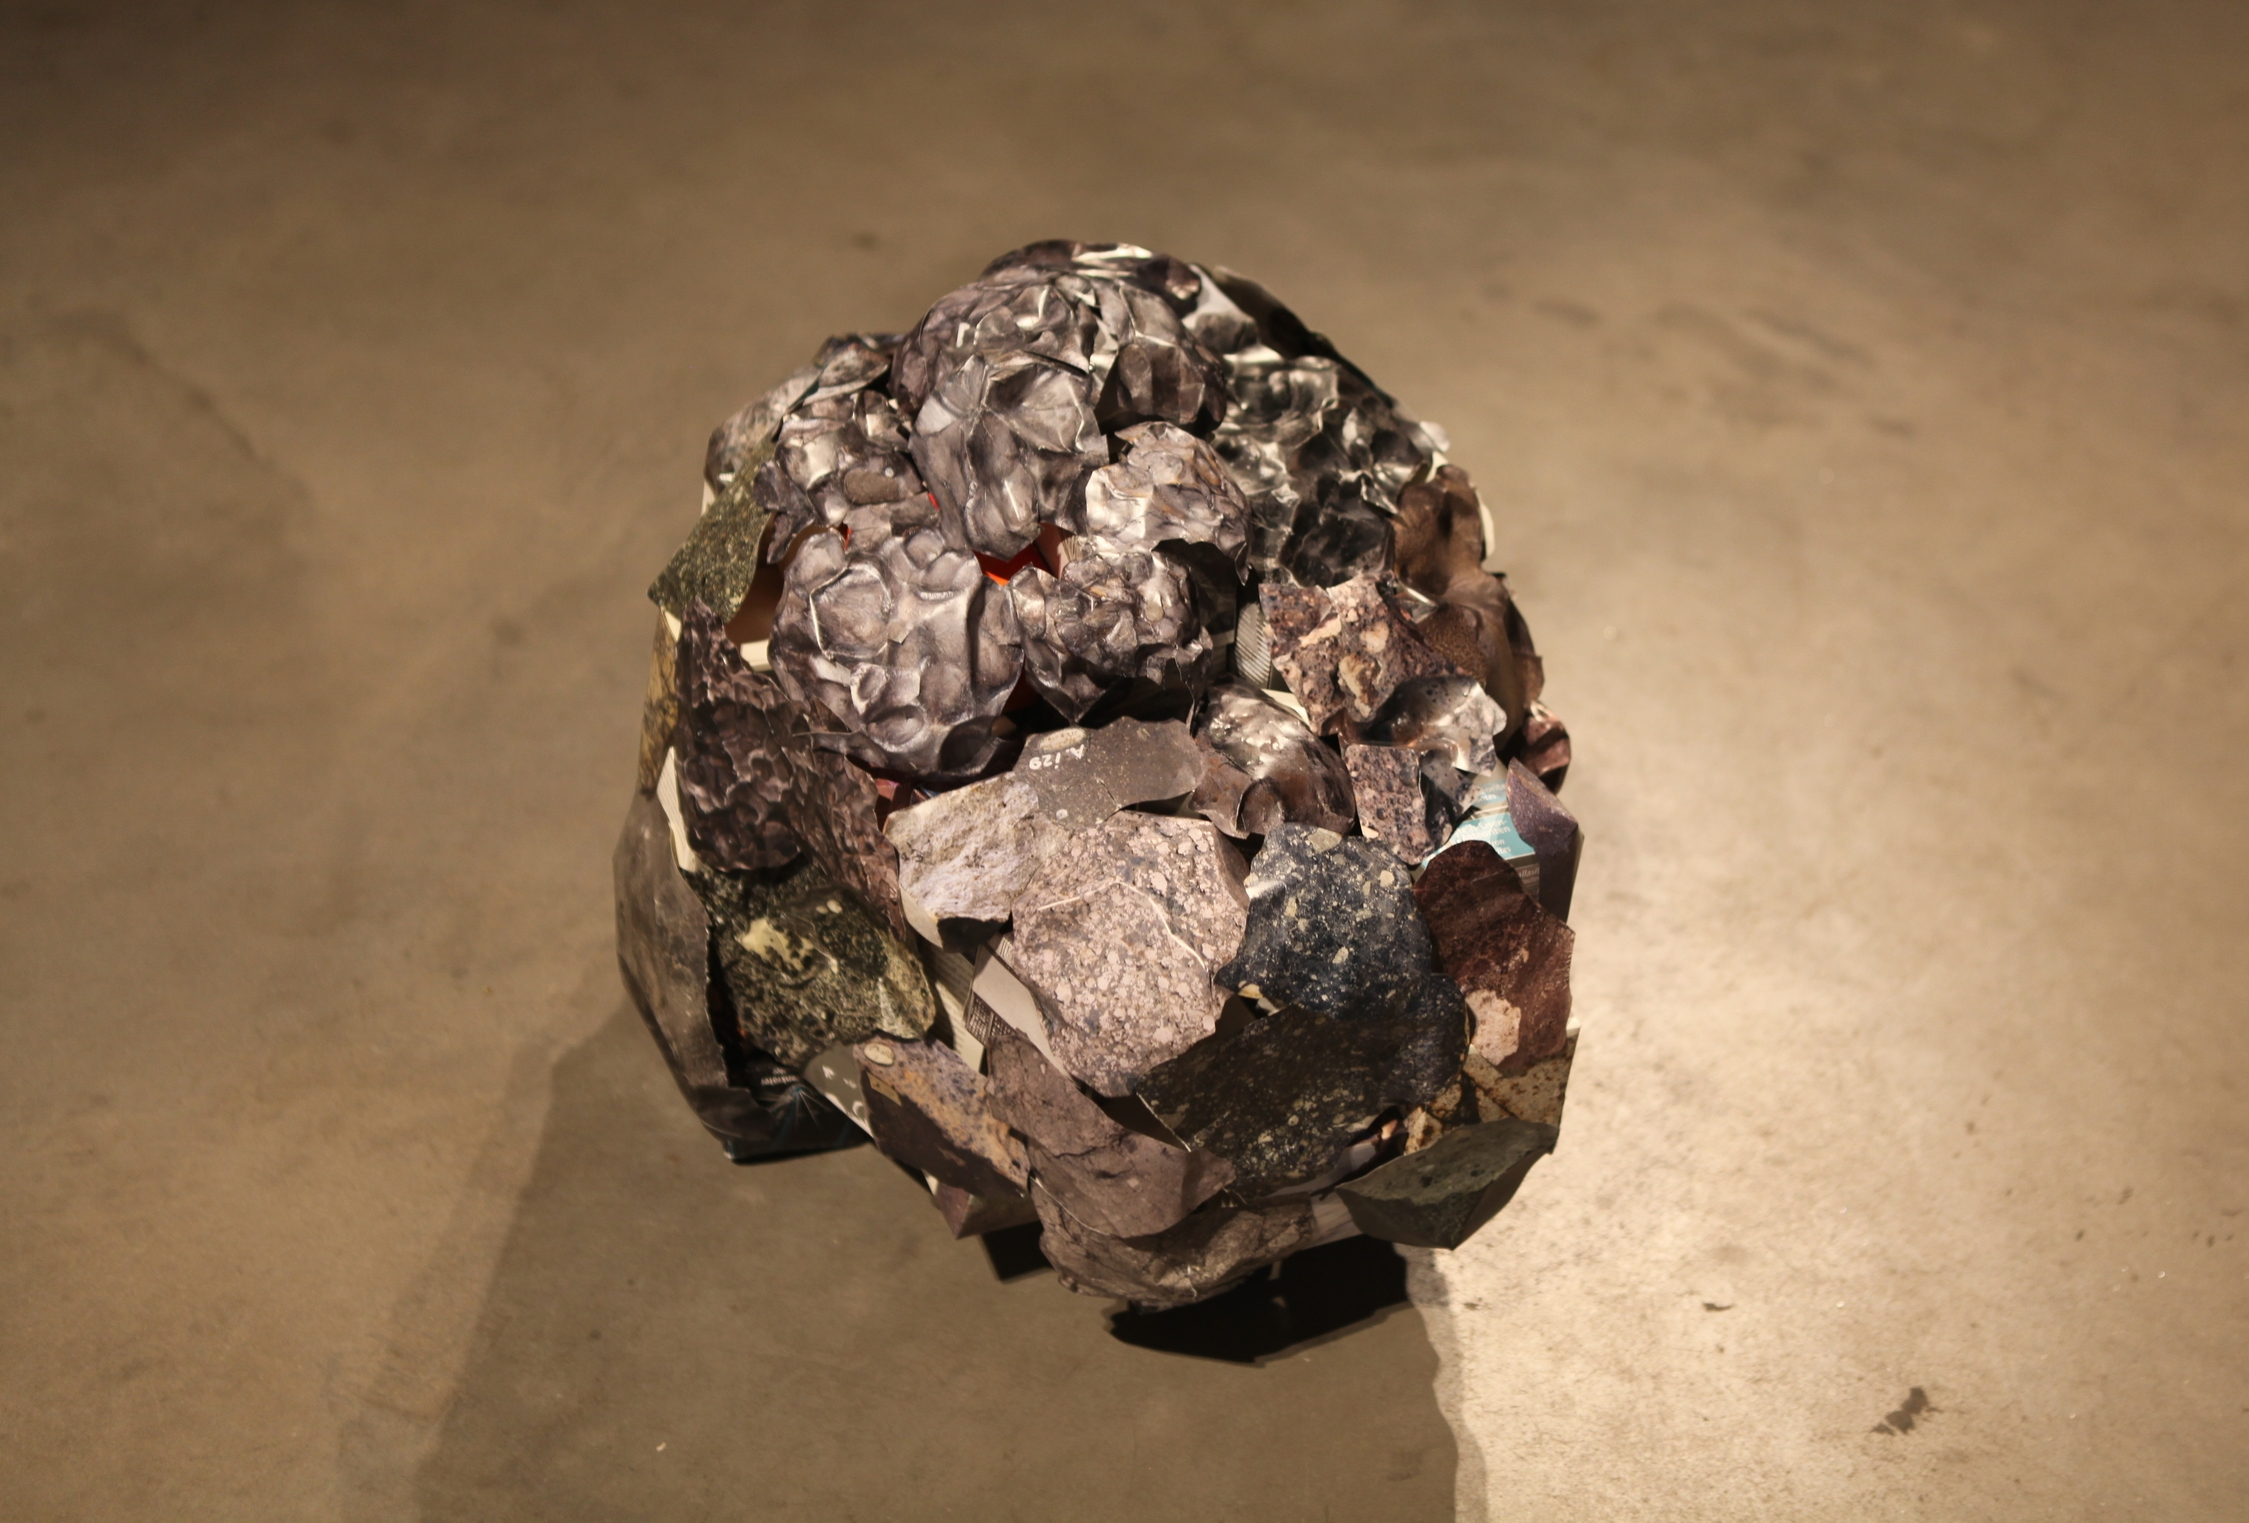 a meteorite-like object made out of books about meteorite, 30 x 30 x 30 inches